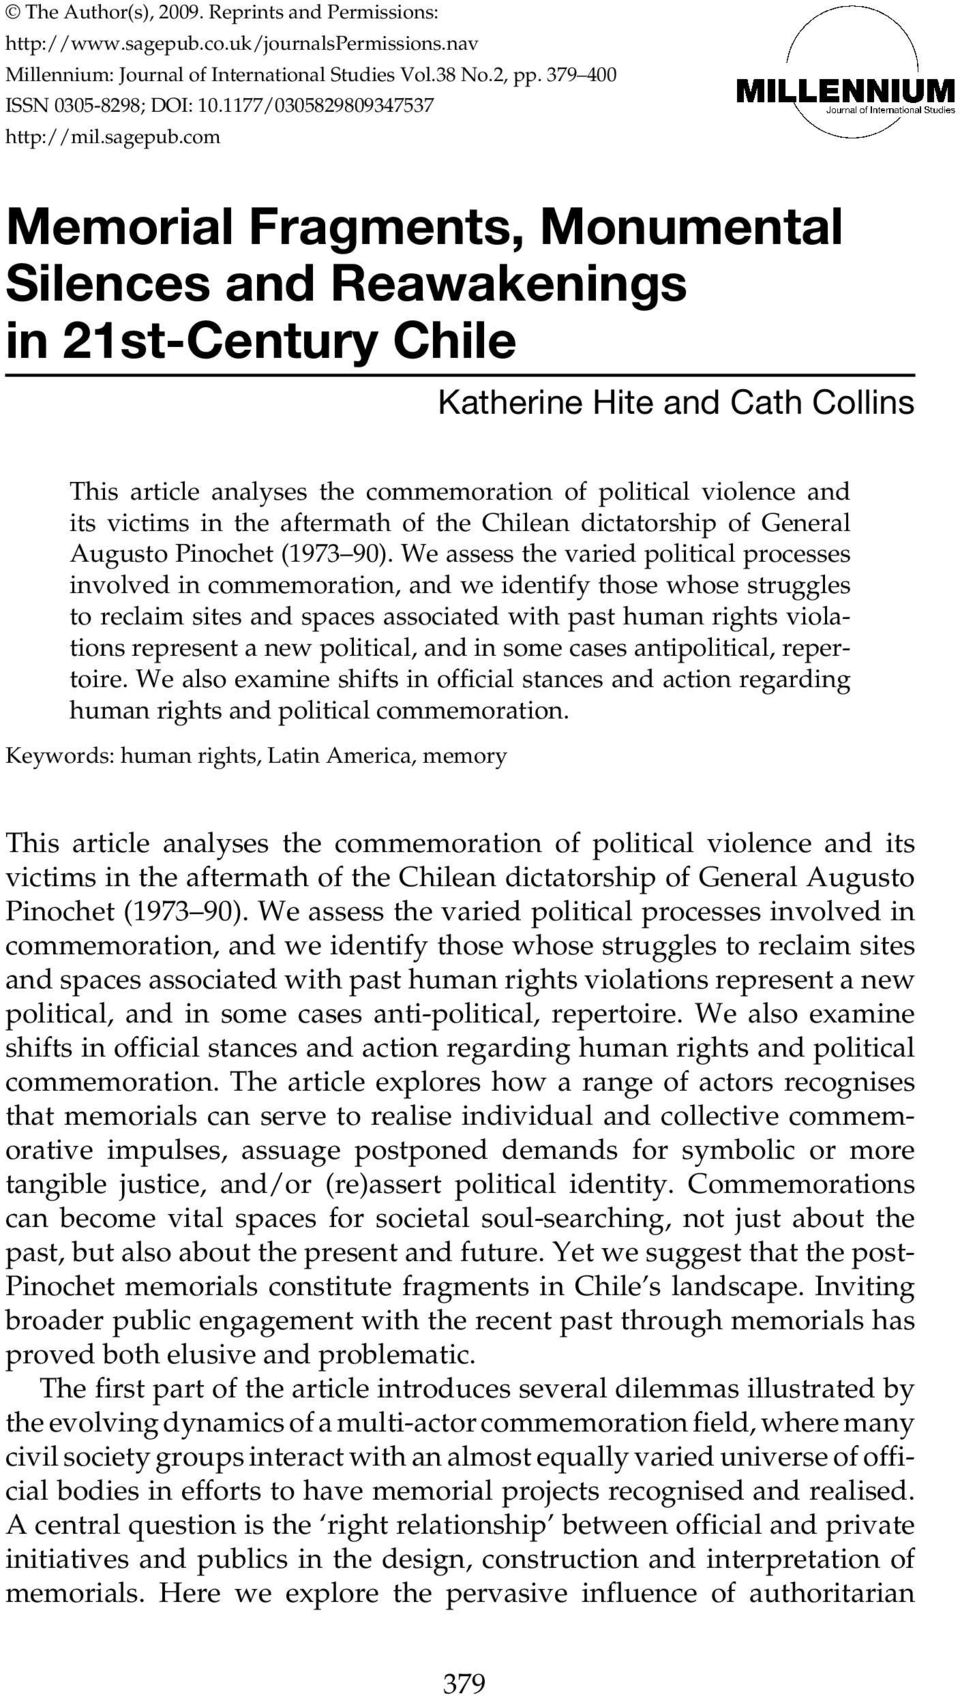 com Memorial Fragments, Monumental Silences and Reawakenings in 21st-Century Chile Katherine Hite and Cath Collins This article analyses the commemoration of political violence and its victims in the